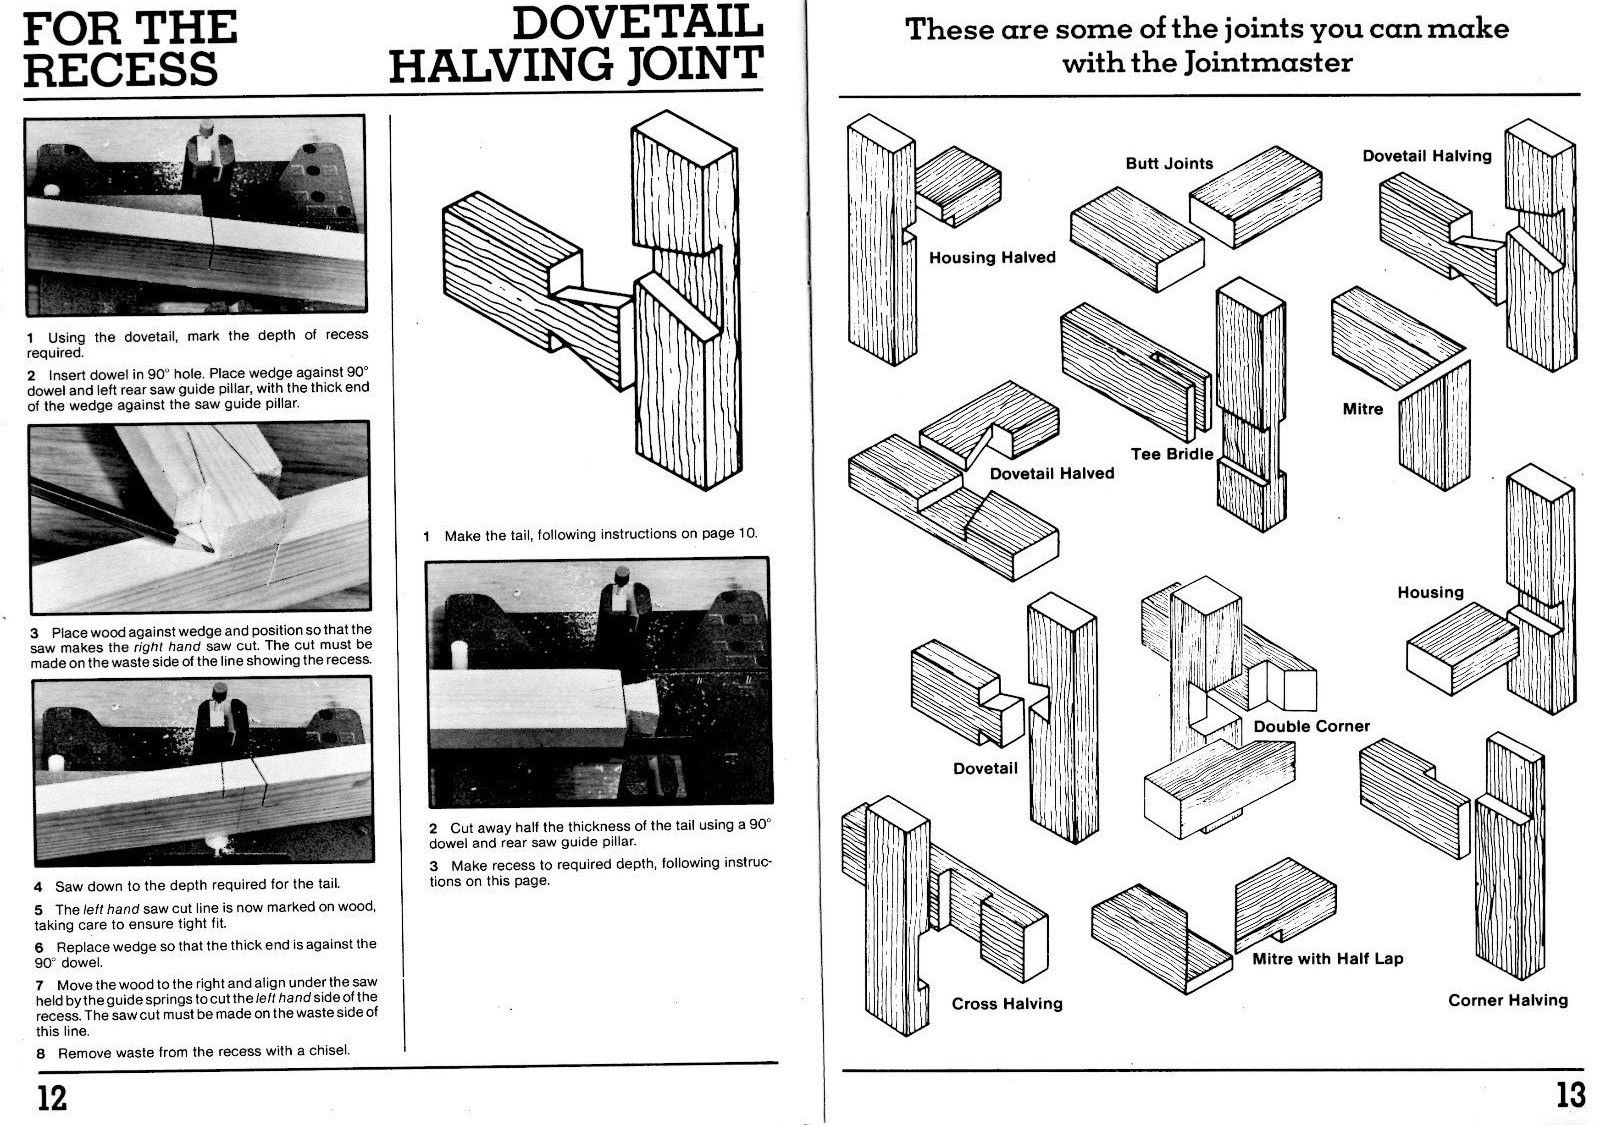 dovetail joint instructions